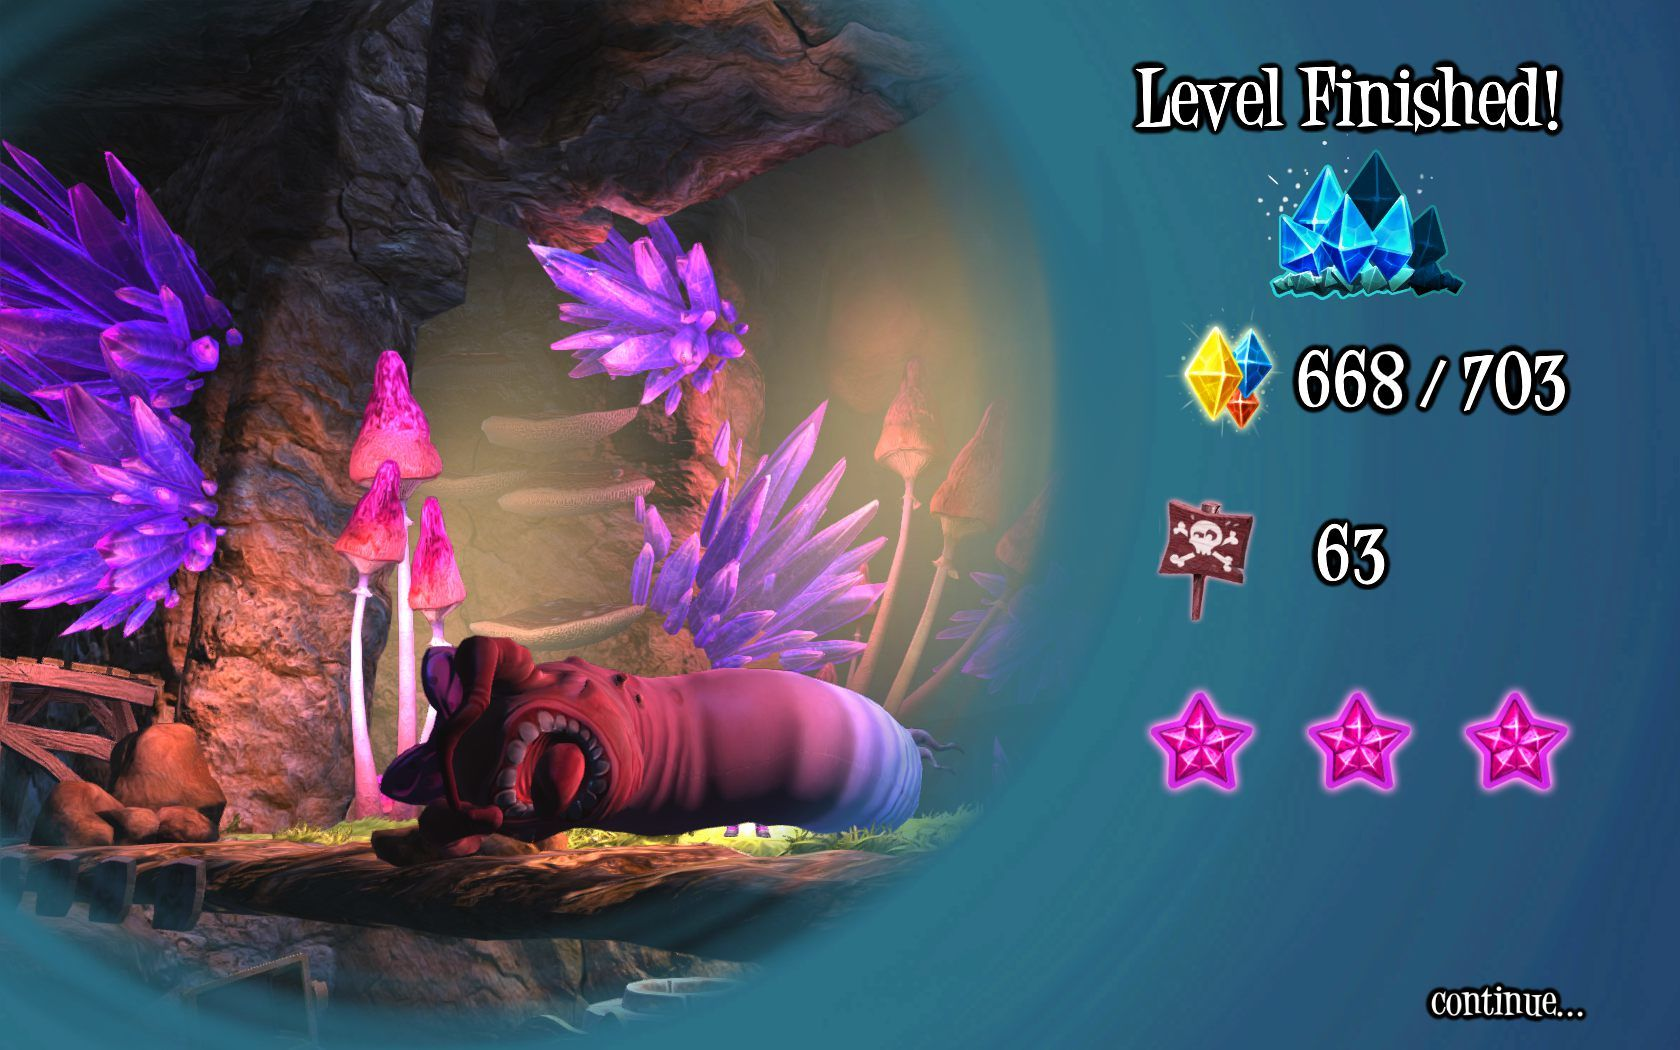 Giana Sisters: Twisted Dreams Windows World 1 completed.You should try to die less often to get more purple stars.